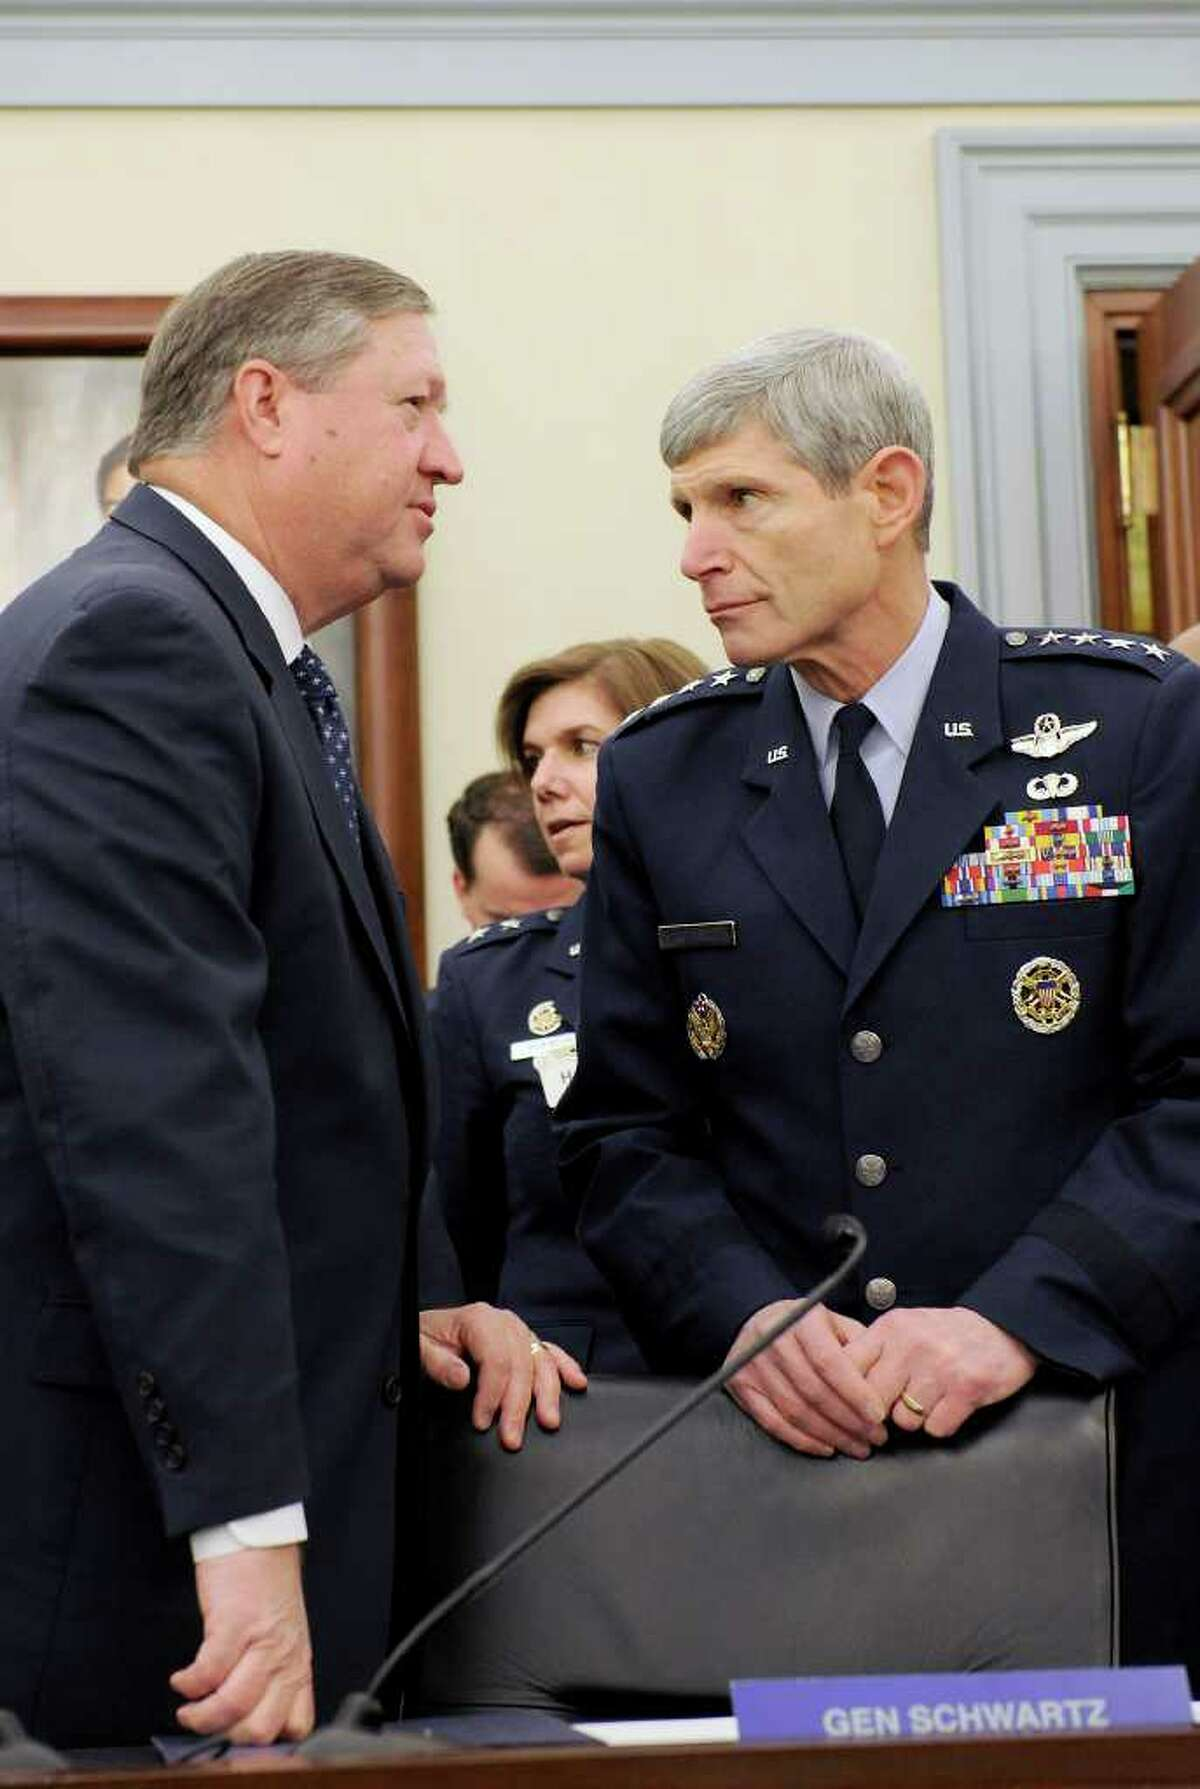 Secretary of the Air Force Michael Donley and Air Force Chief of Staff Gen. Norton Schwartz talk prior to a March 6th Air Force budget hearing before the U.S. House Appropriations Committee on Defense in Washington, D.C.